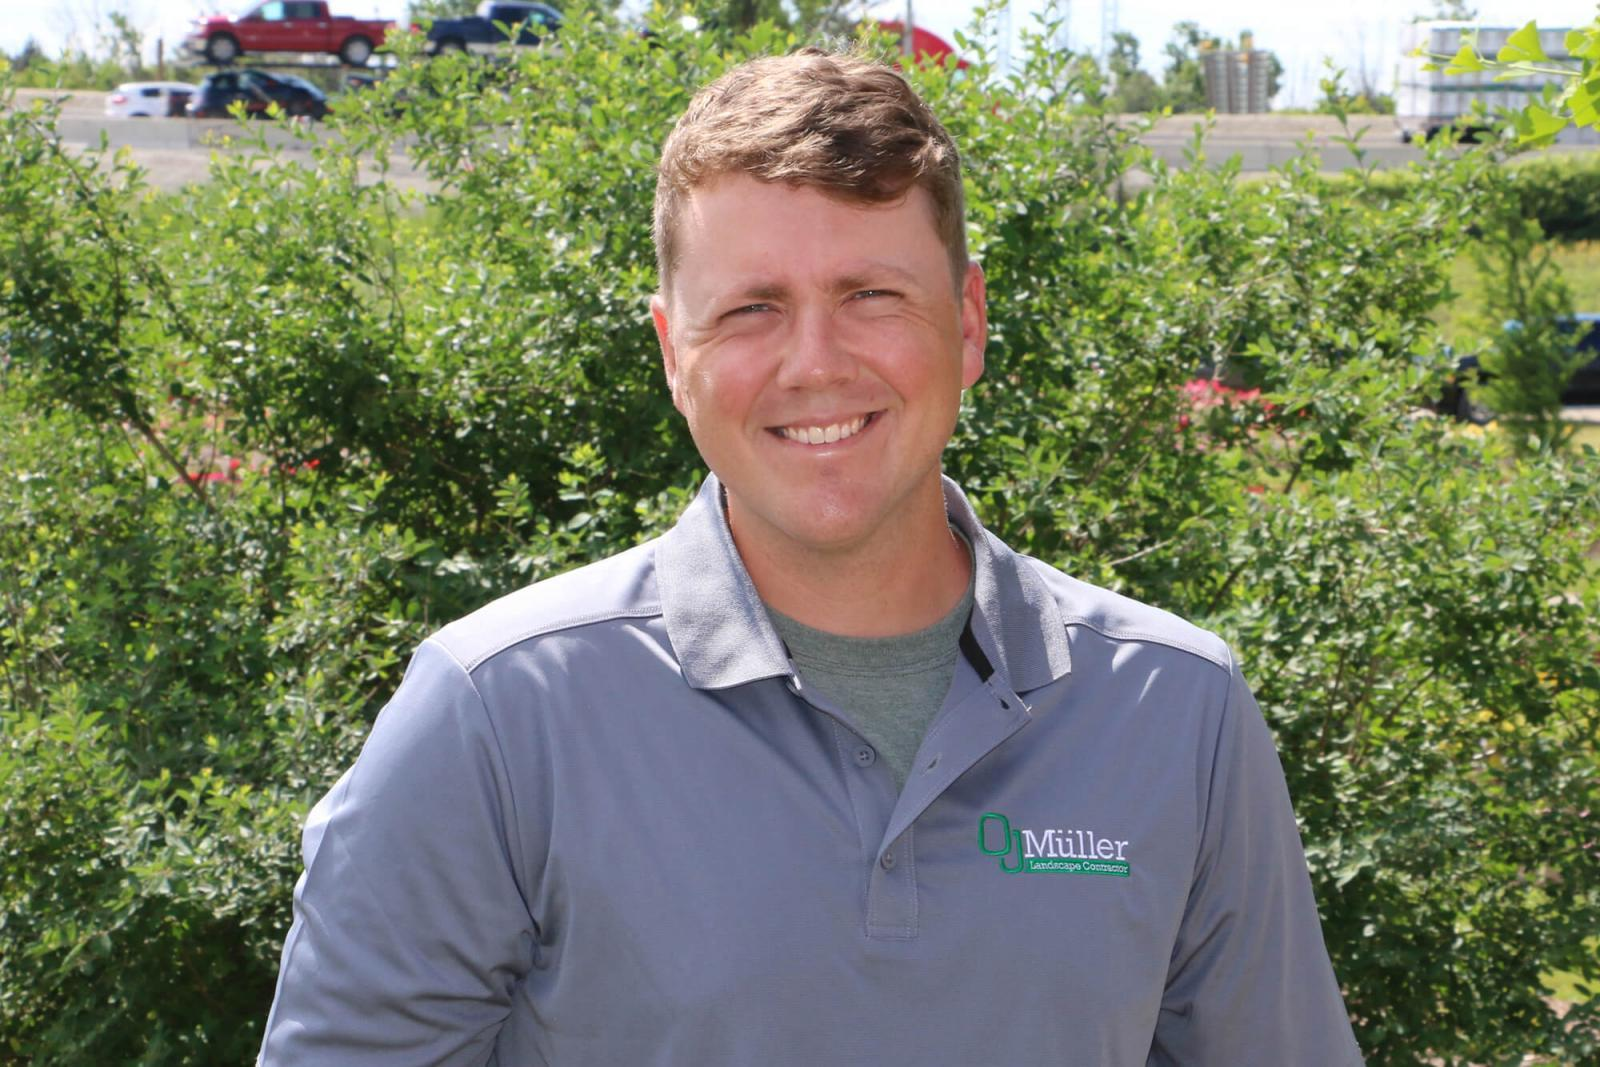 Chris Muller was drawn to a career in the landscape profession for many reasons.